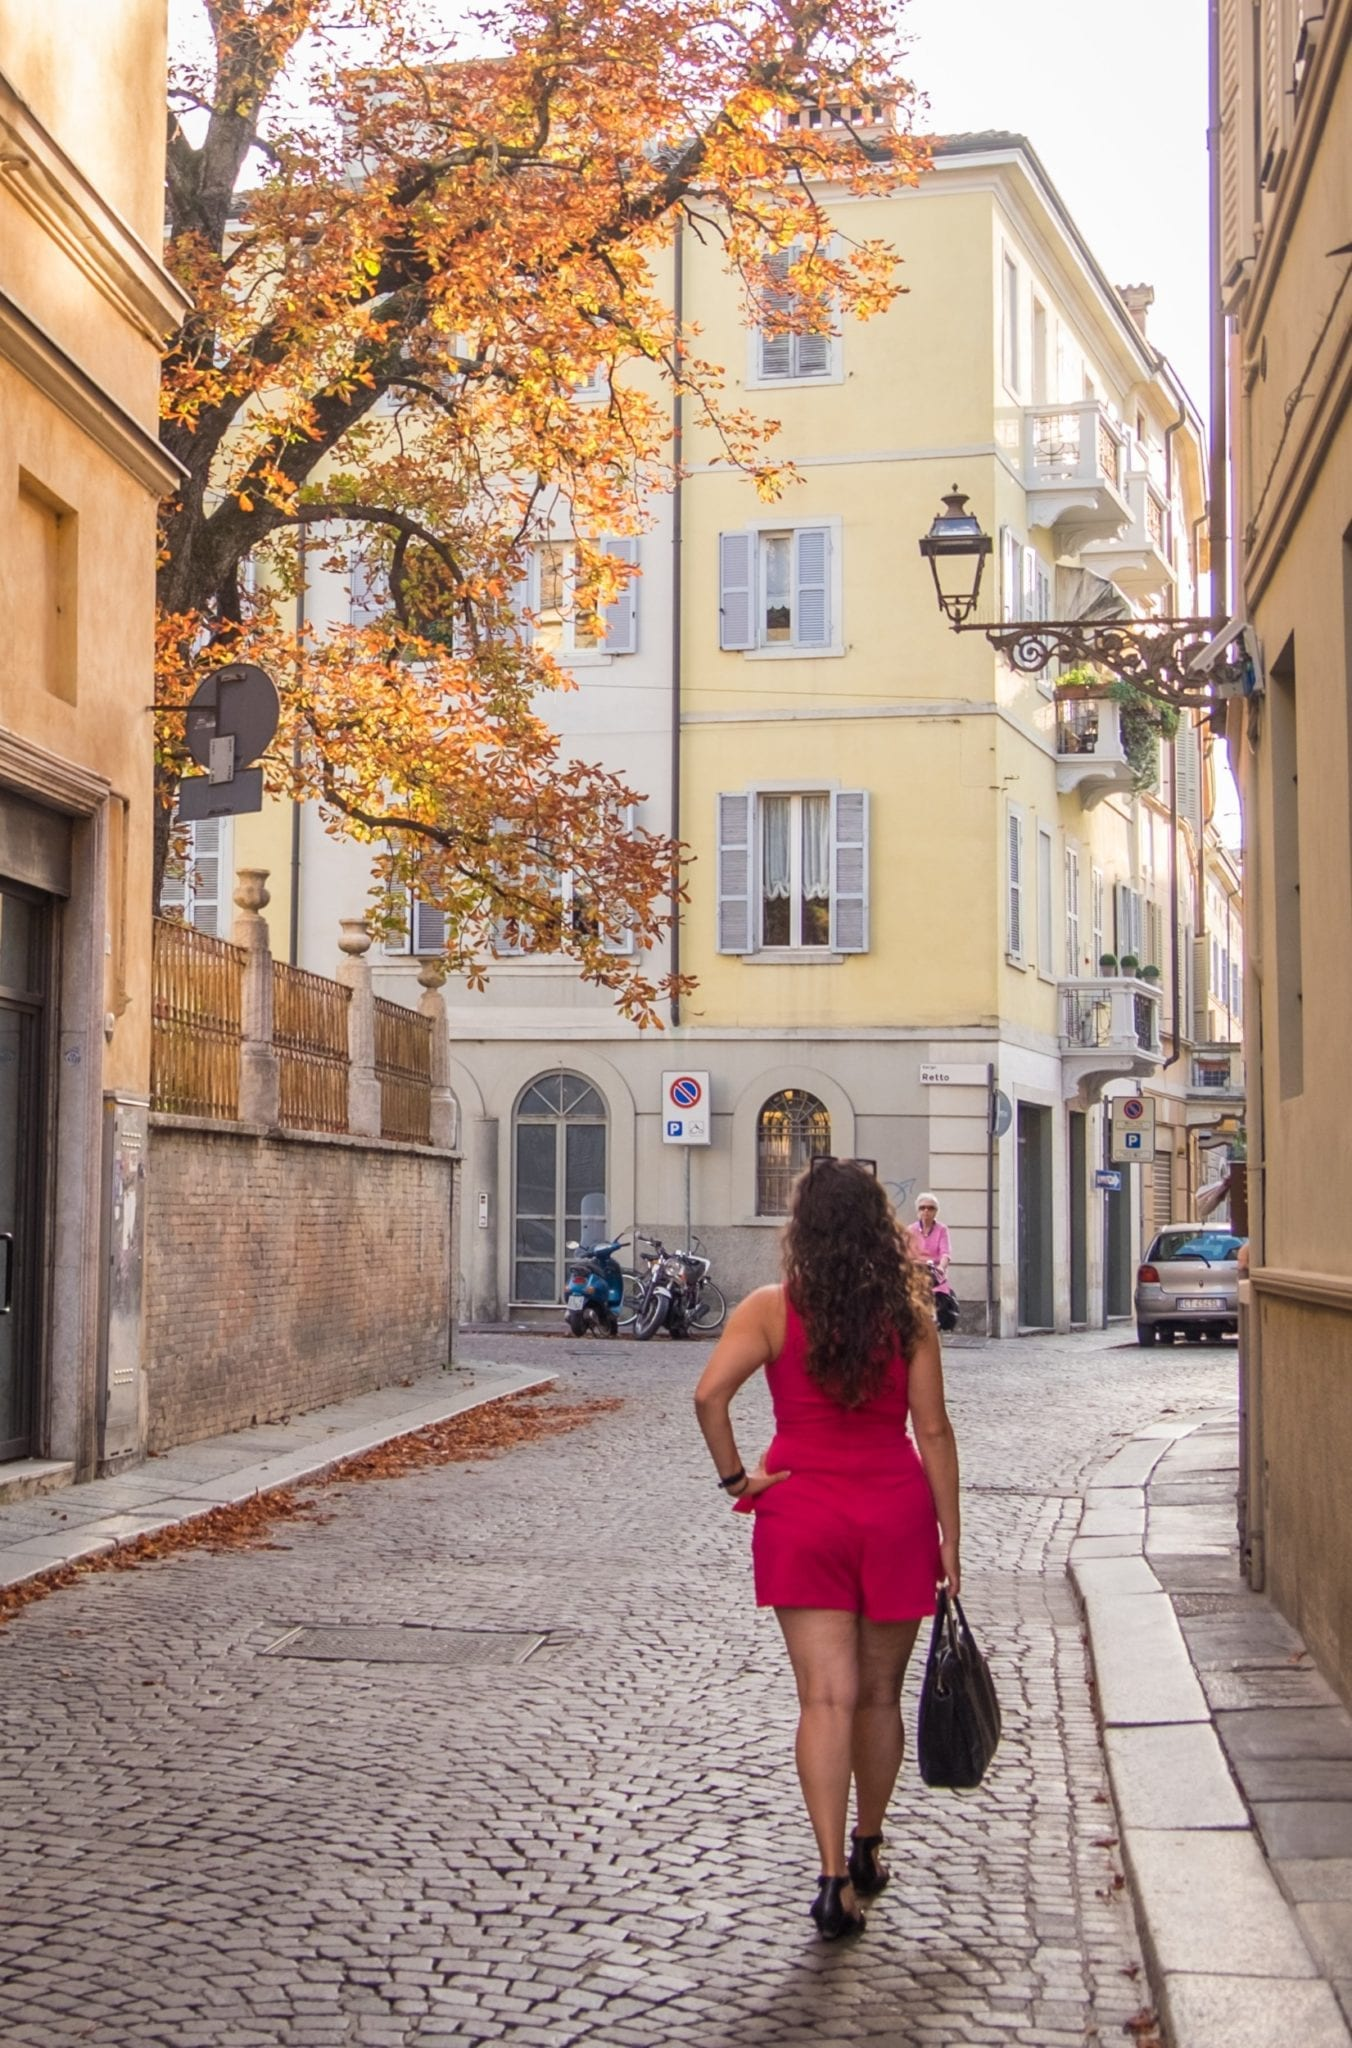 Kate wears a short hot pink romper and stands on a cobblestoned street in front of a yellow building and a tree with autumn leaves.